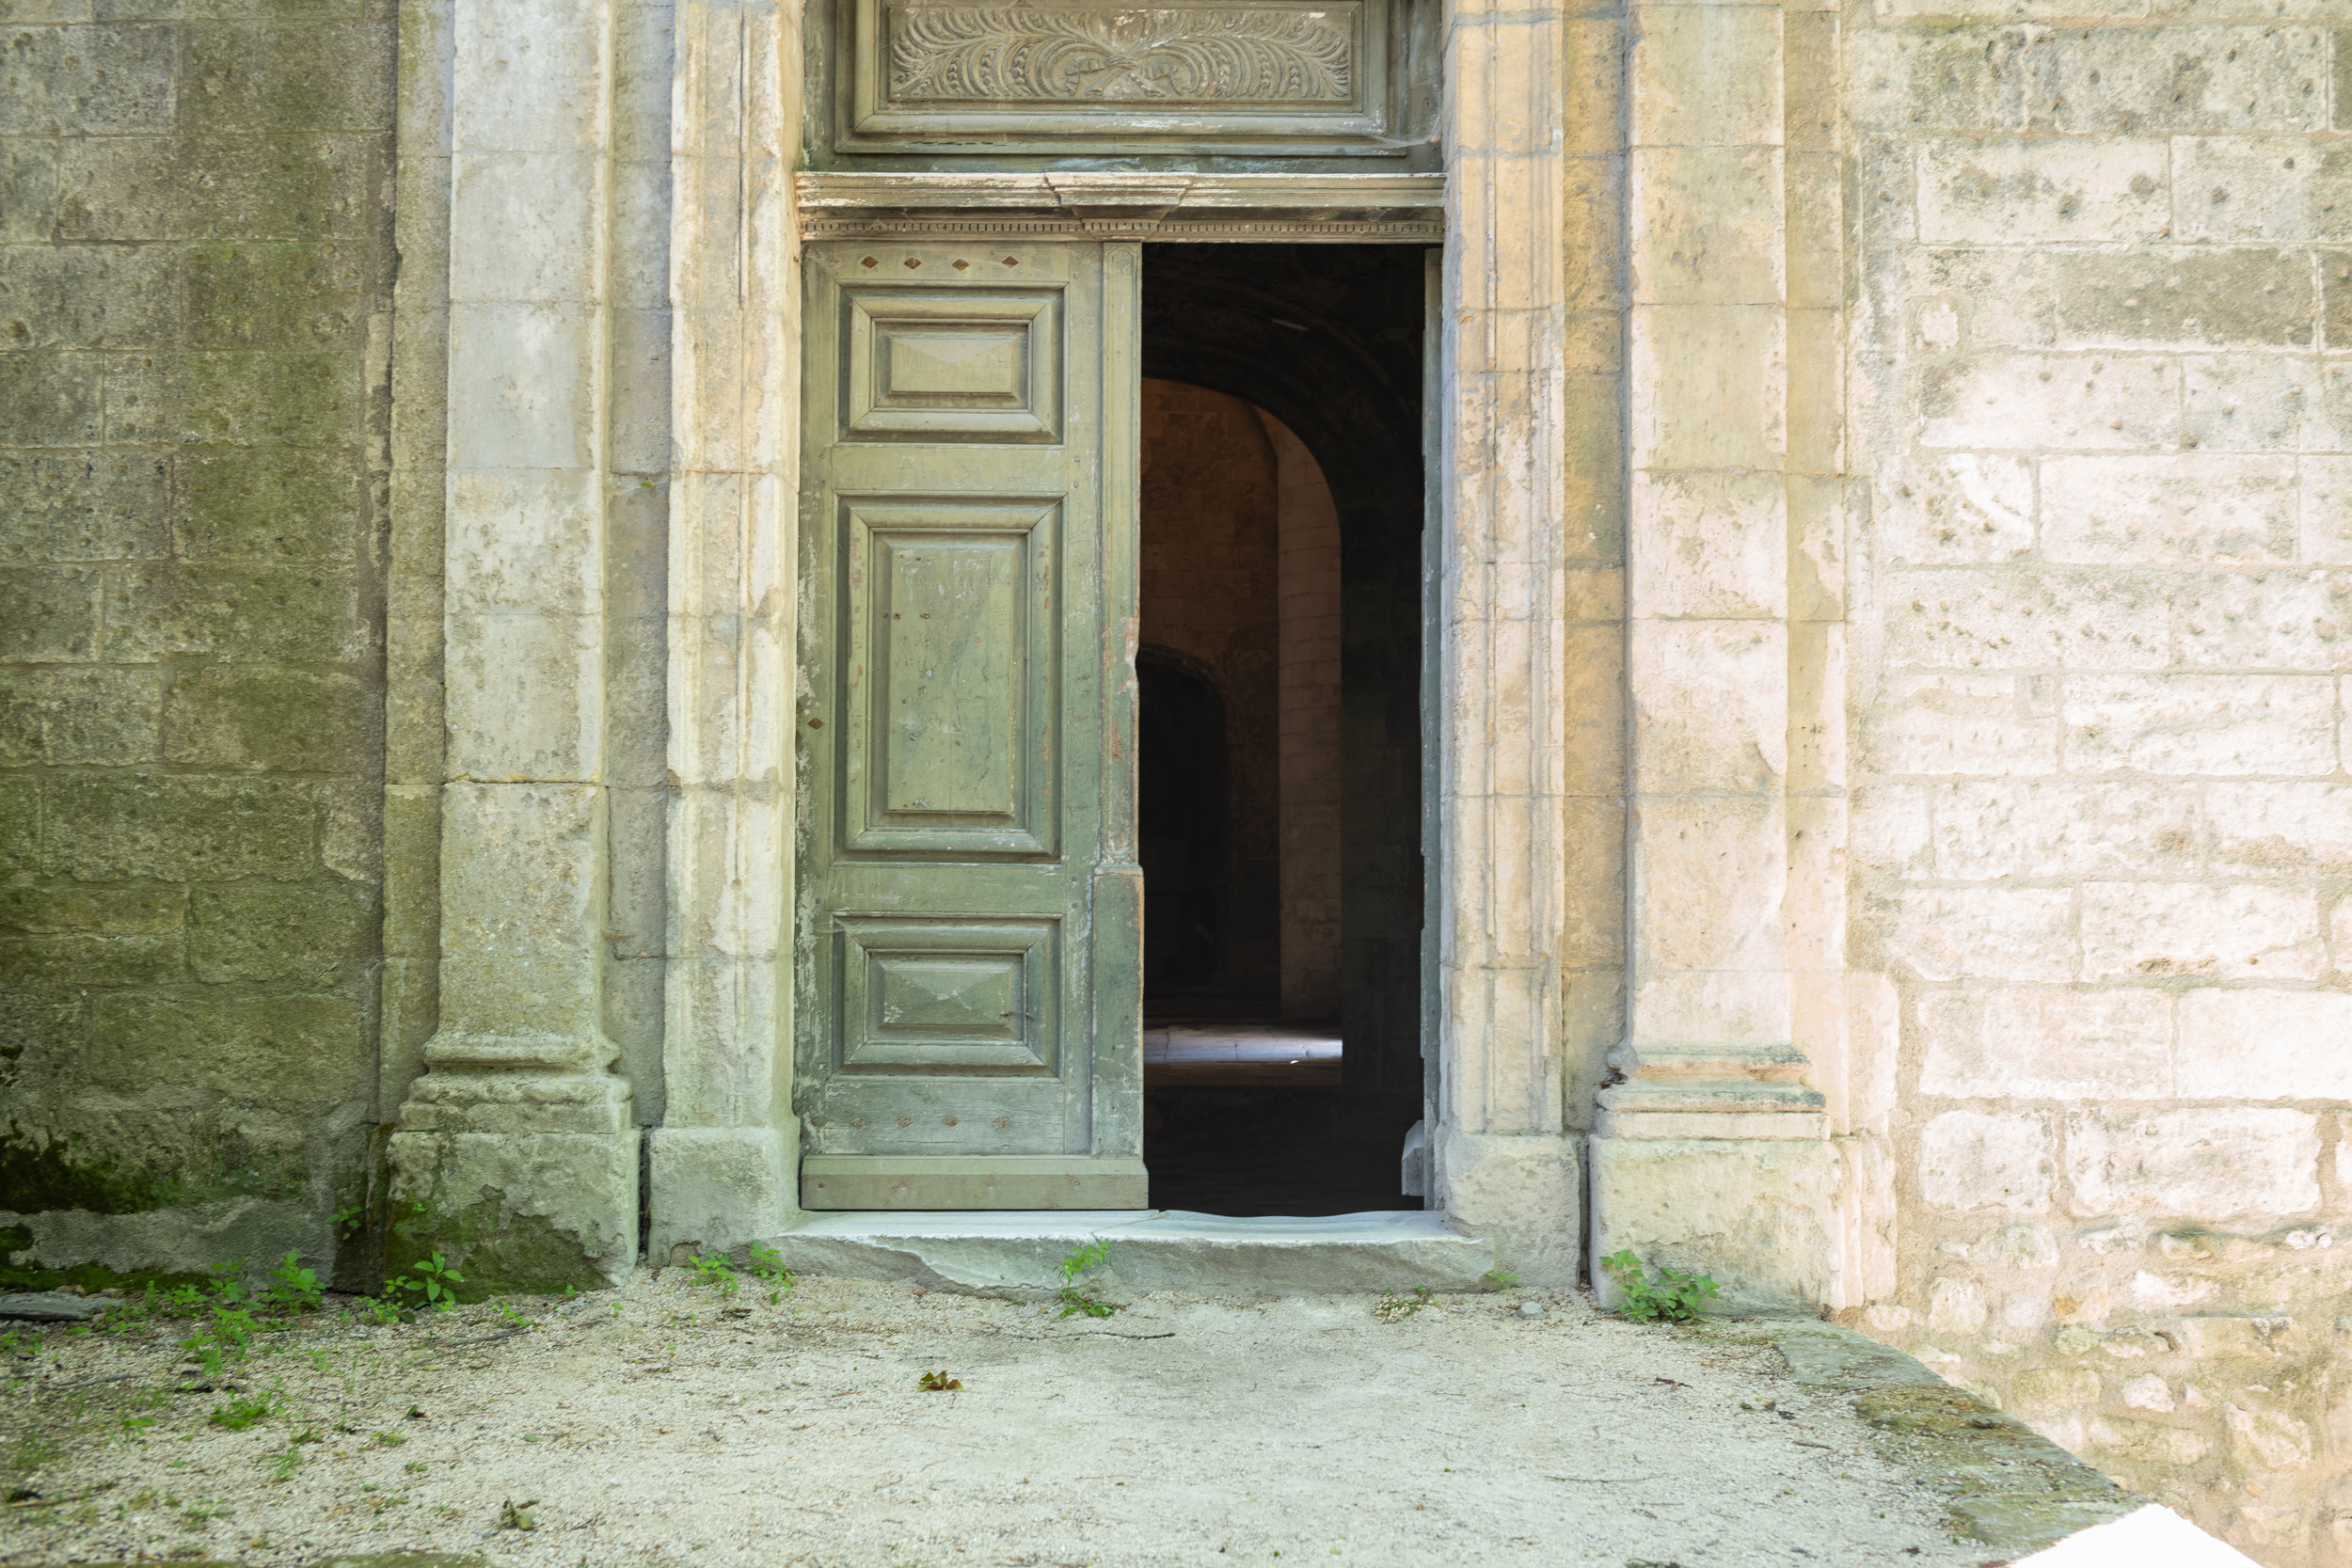 Église Saint Honora, Alyscamps, Arles, France The open door invites us into this church located in the ancient Roman cemetery.